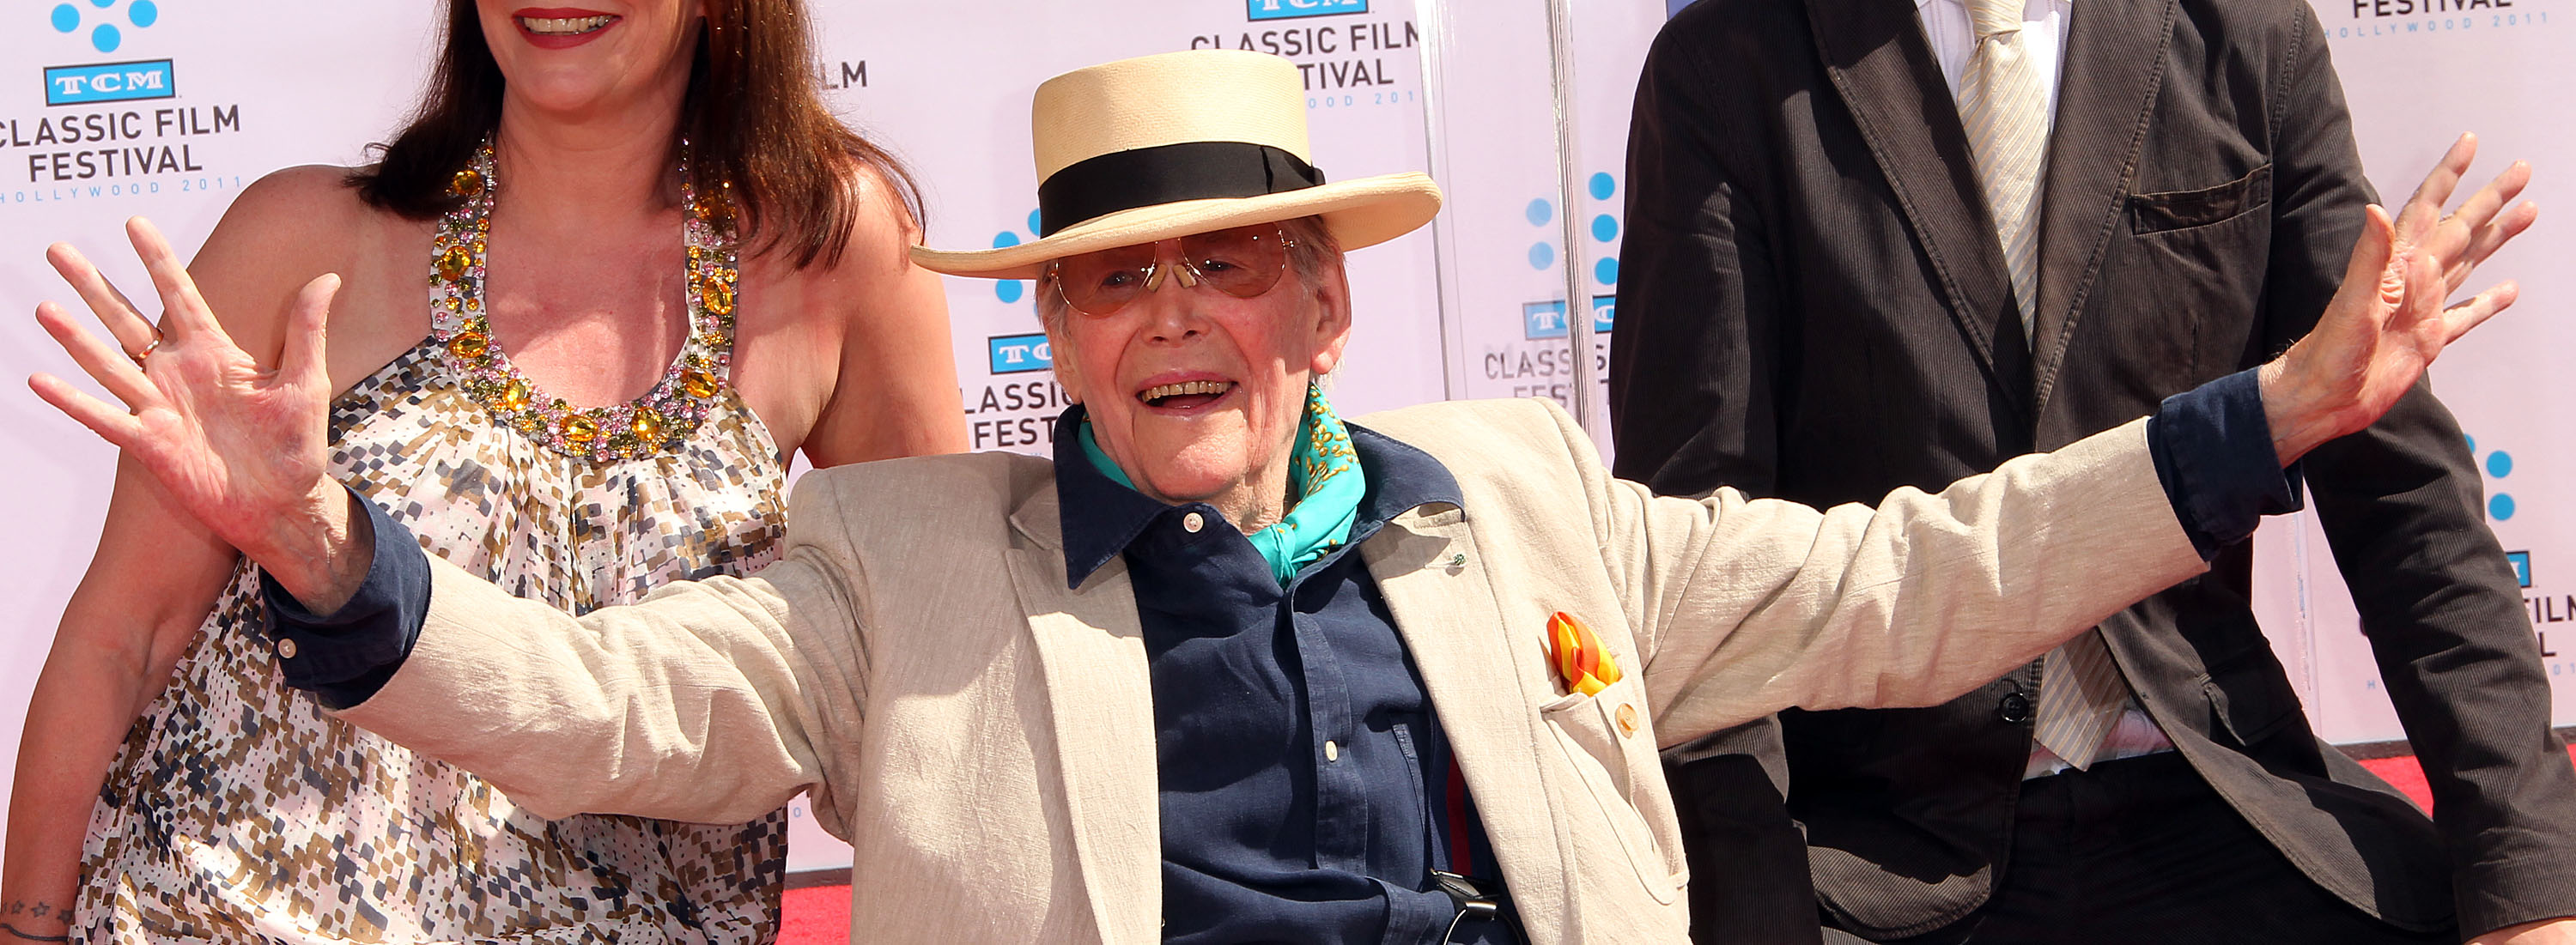 Hollywood Legend and Lawrence of Arabia Star Peter O Toole Dies at 81